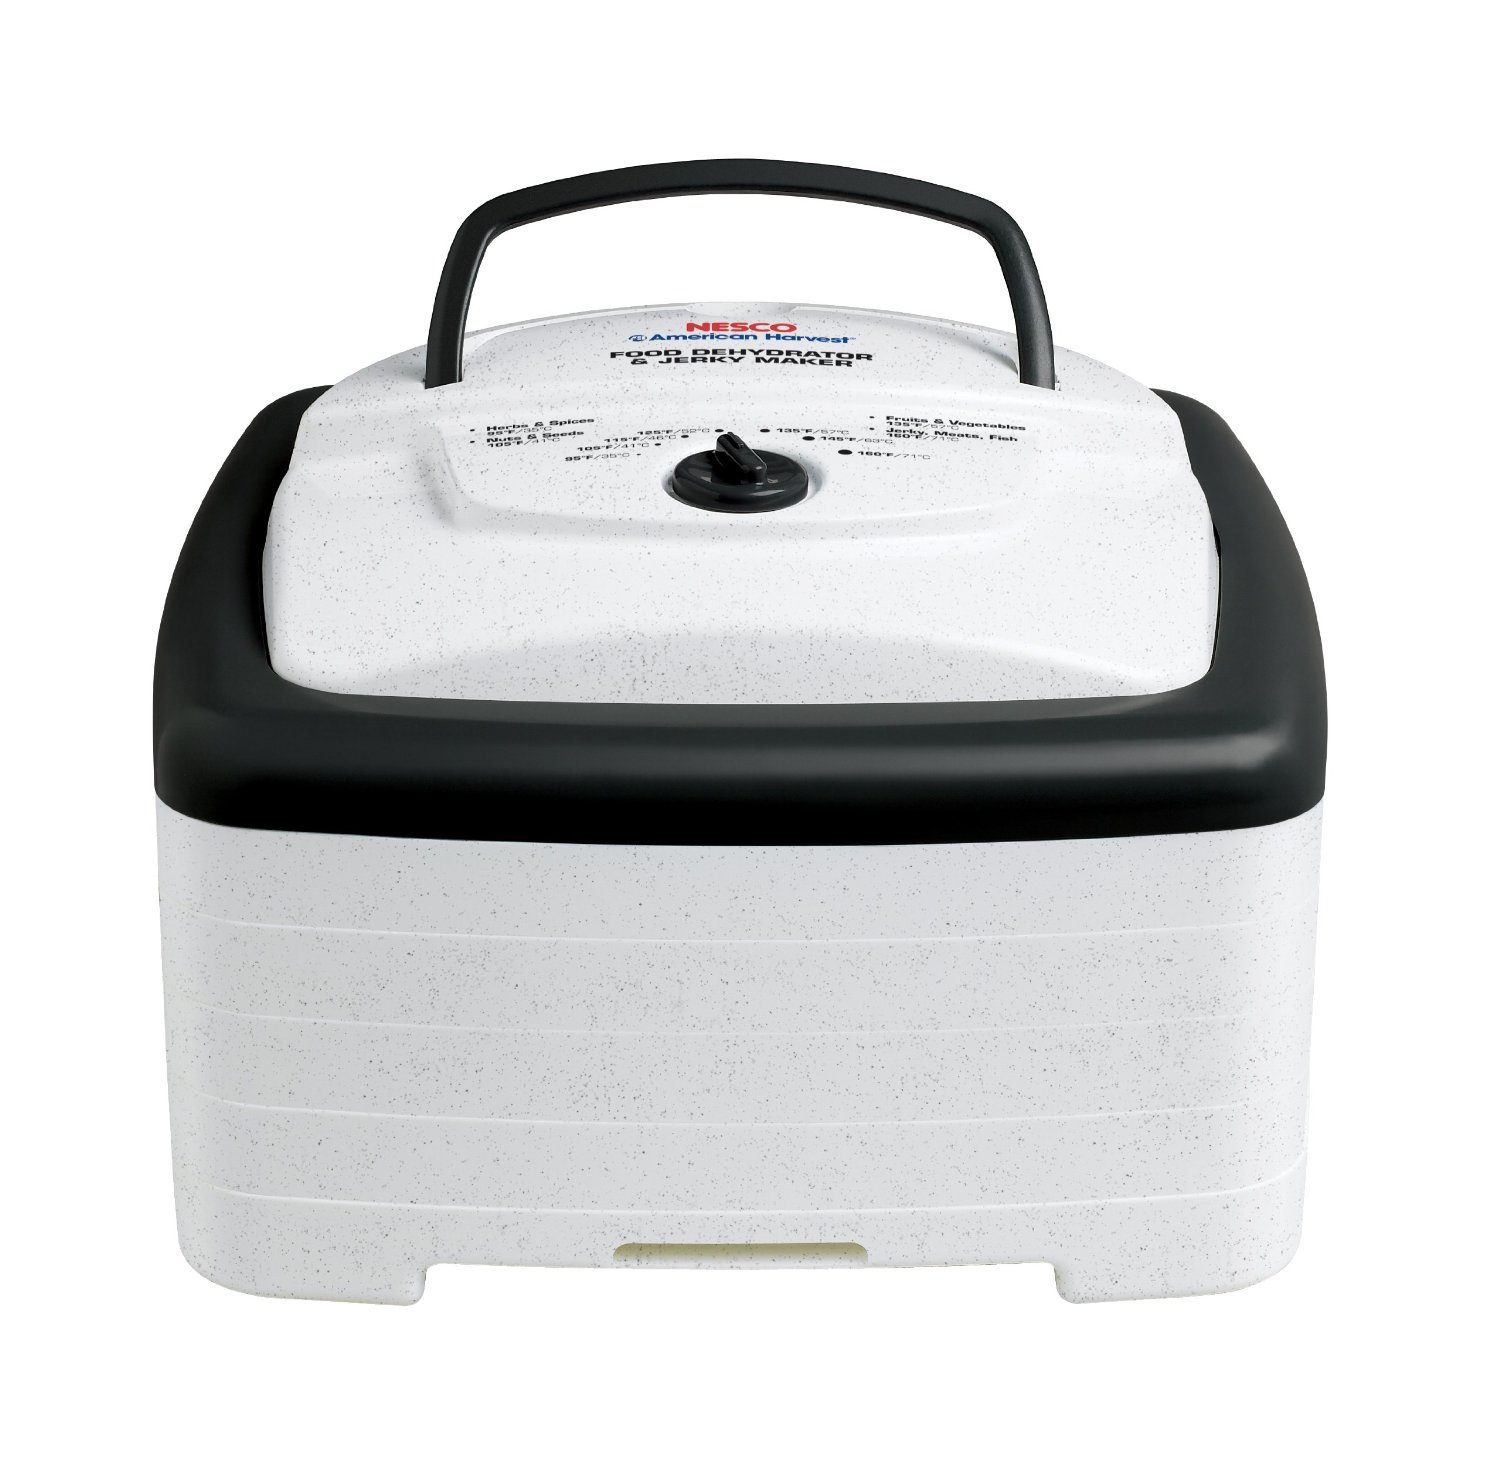 Nesco FD-80A food dehydrator